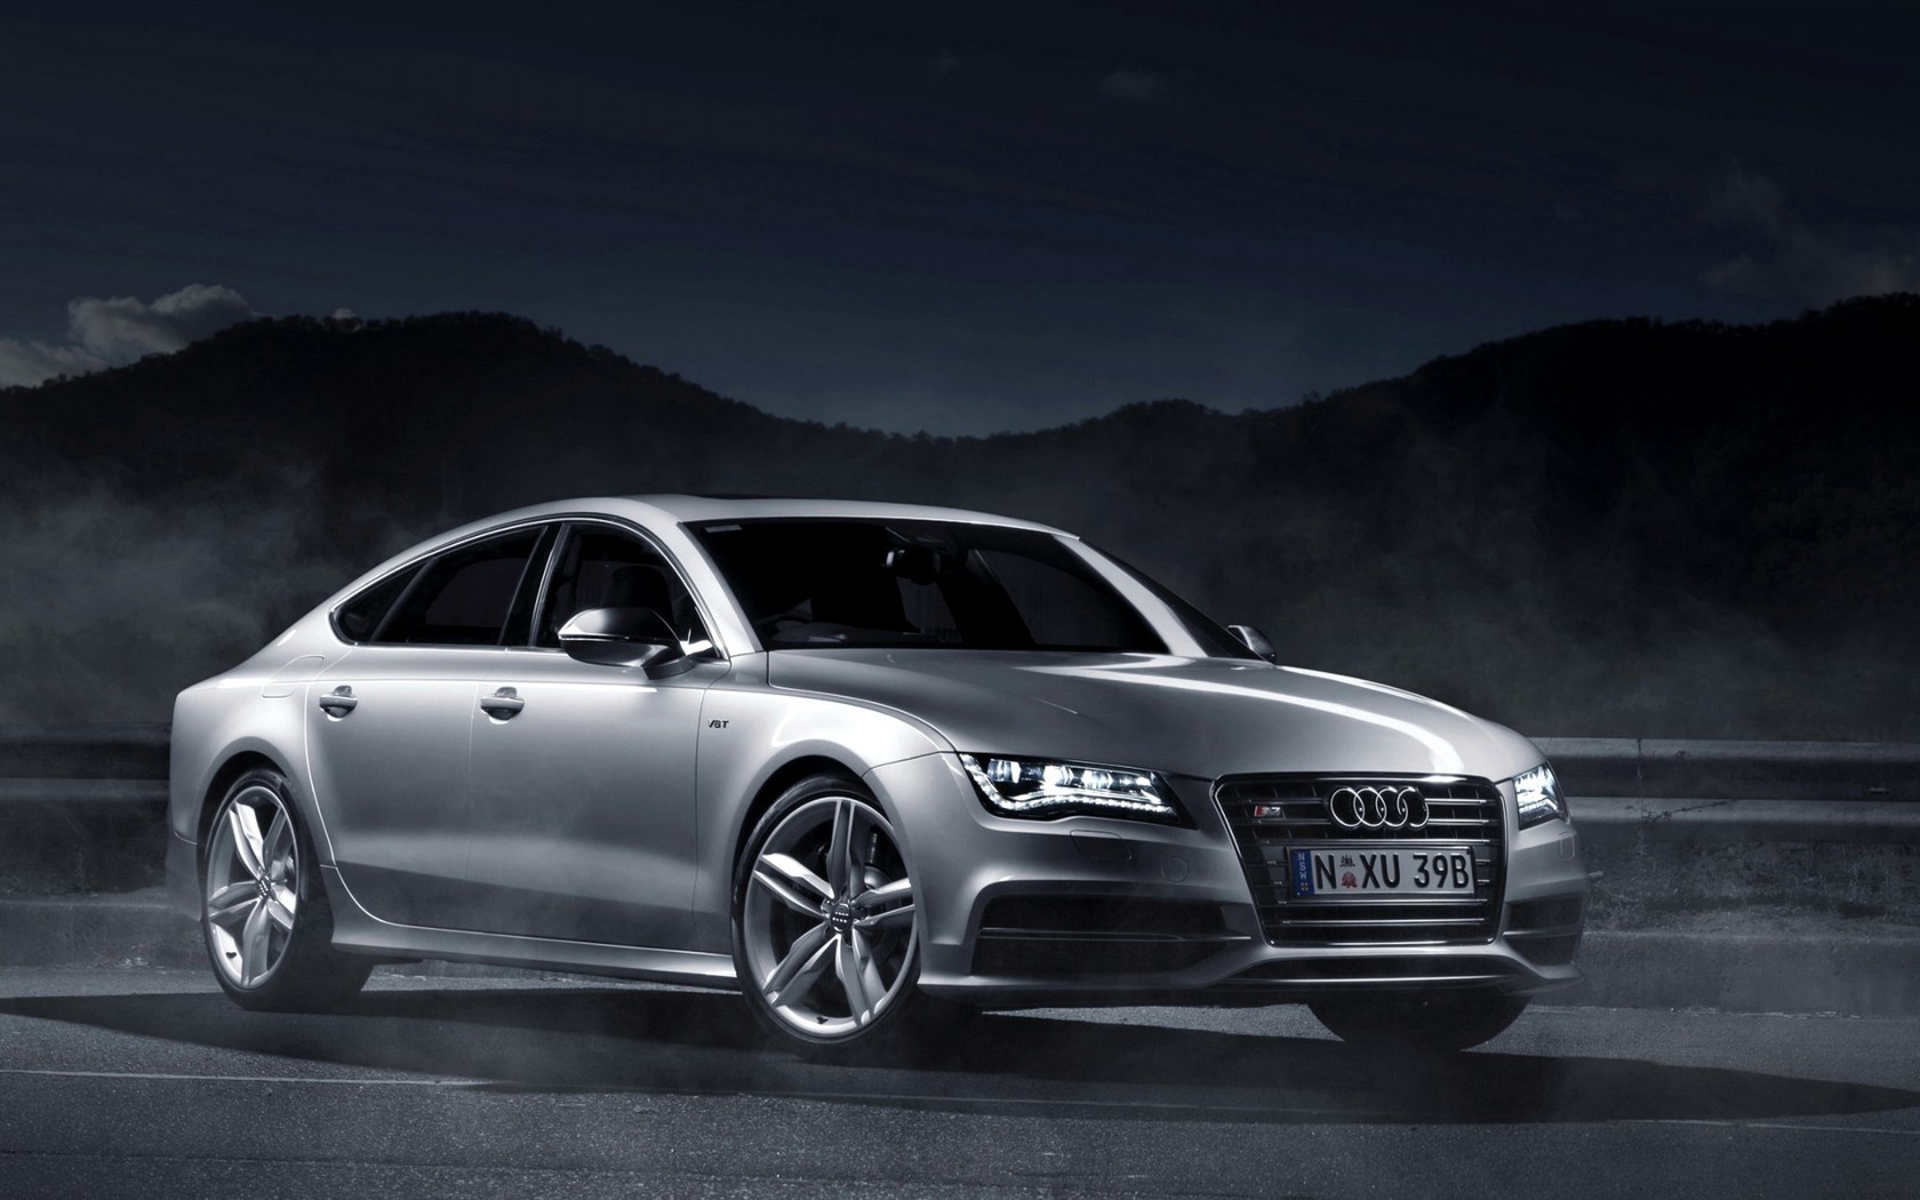 audi s7 wallpaper wallpapersafari. Black Bedroom Furniture Sets. Home Design Ideas